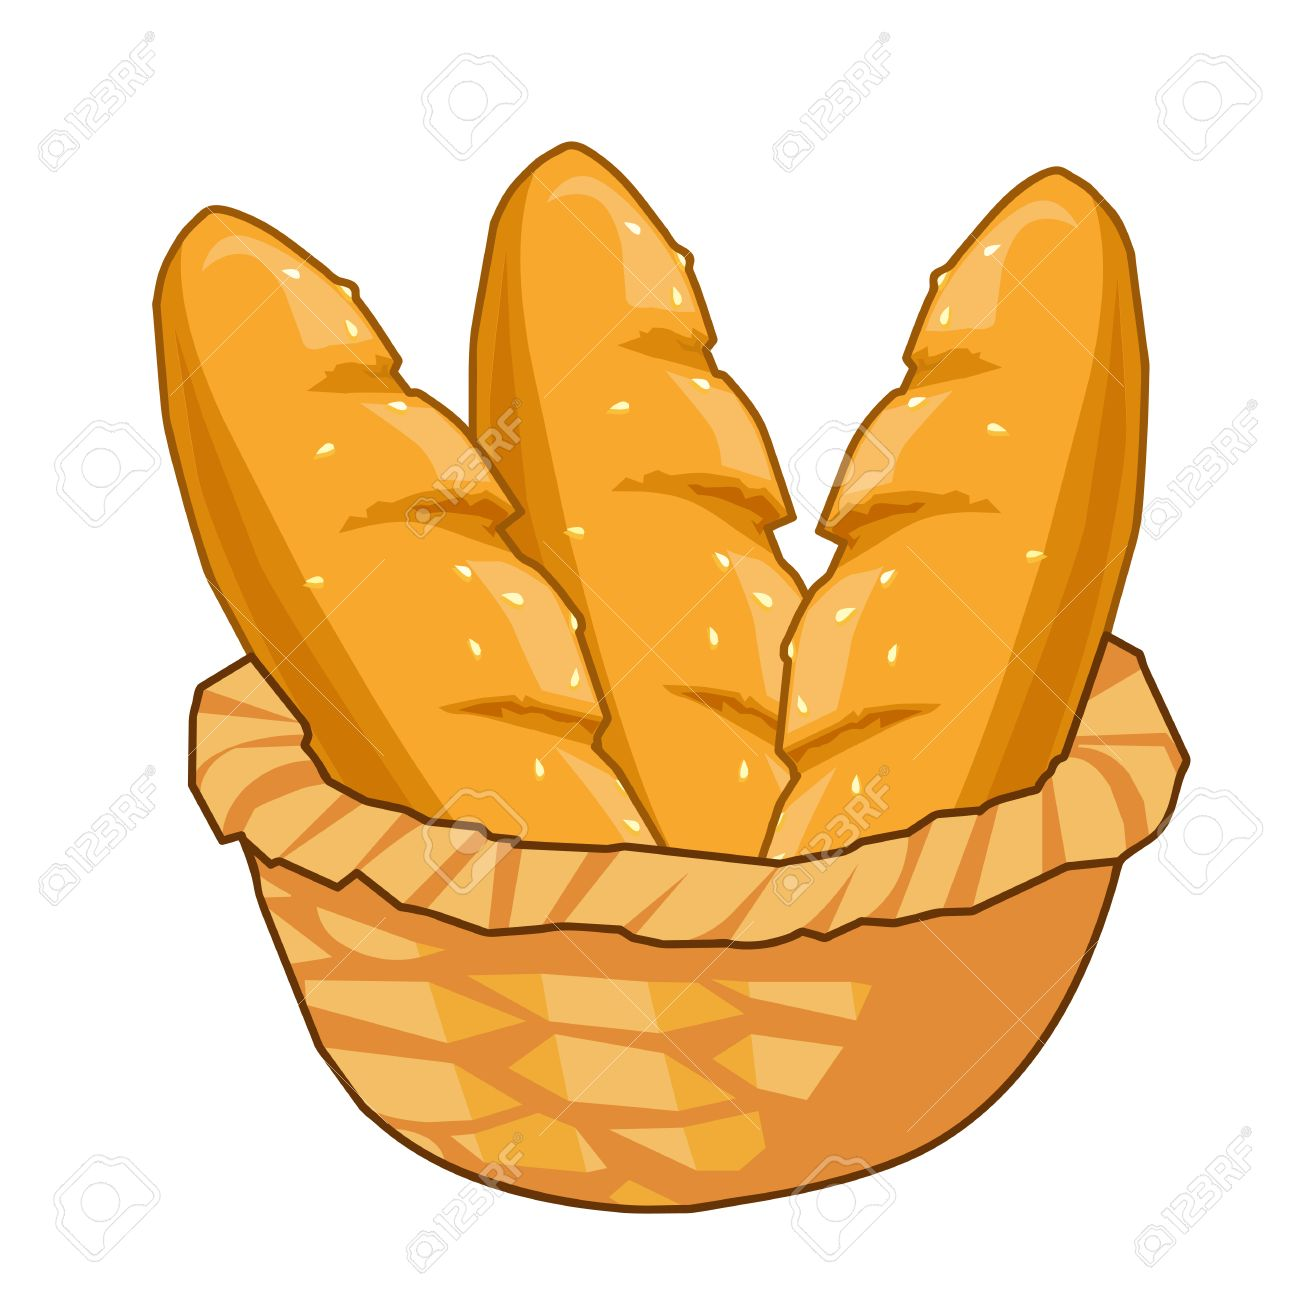 Bread in Basket isolated illustration on white background.